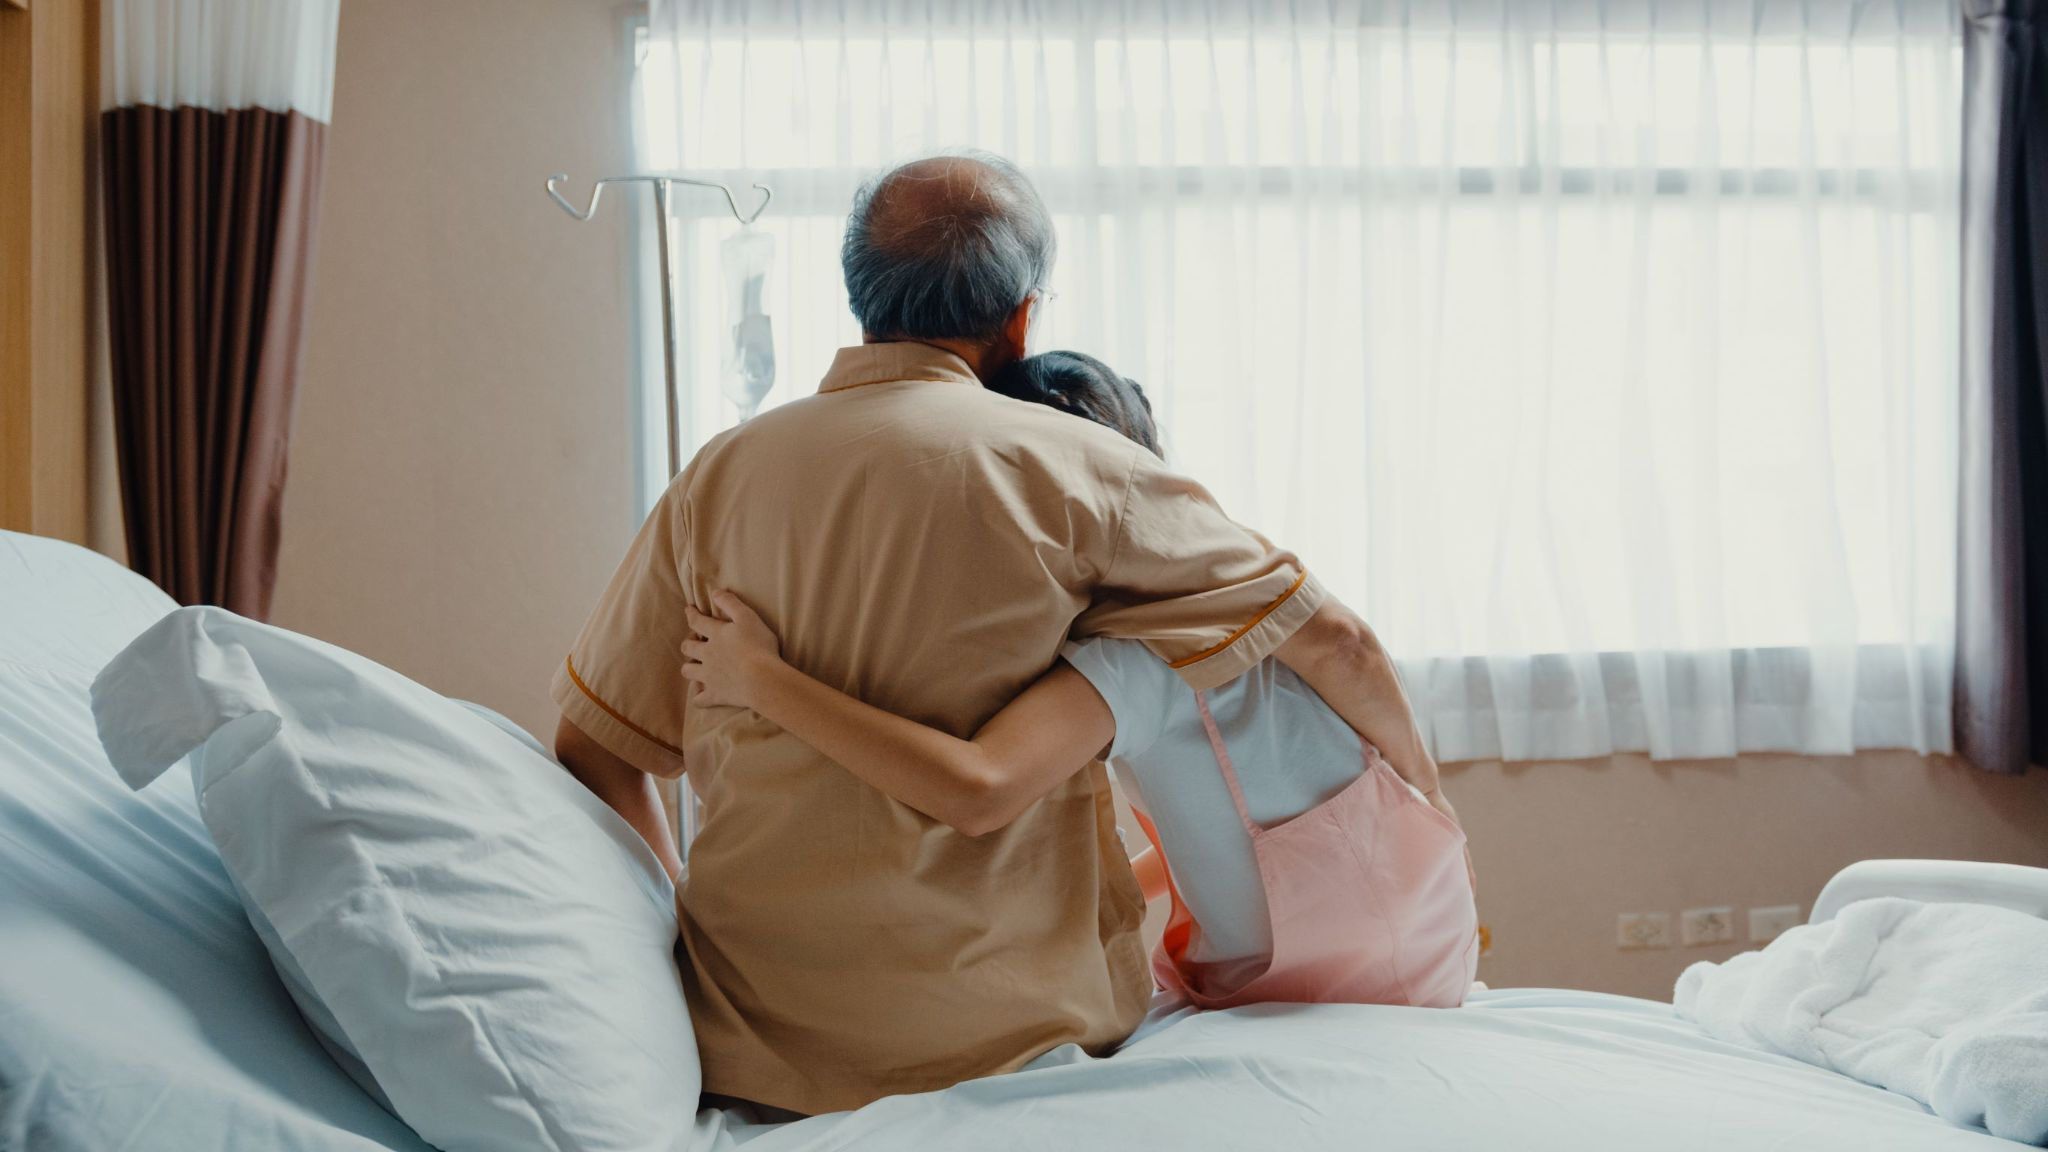 grandfather-in-hospital-gets-hug-from-granddaughter